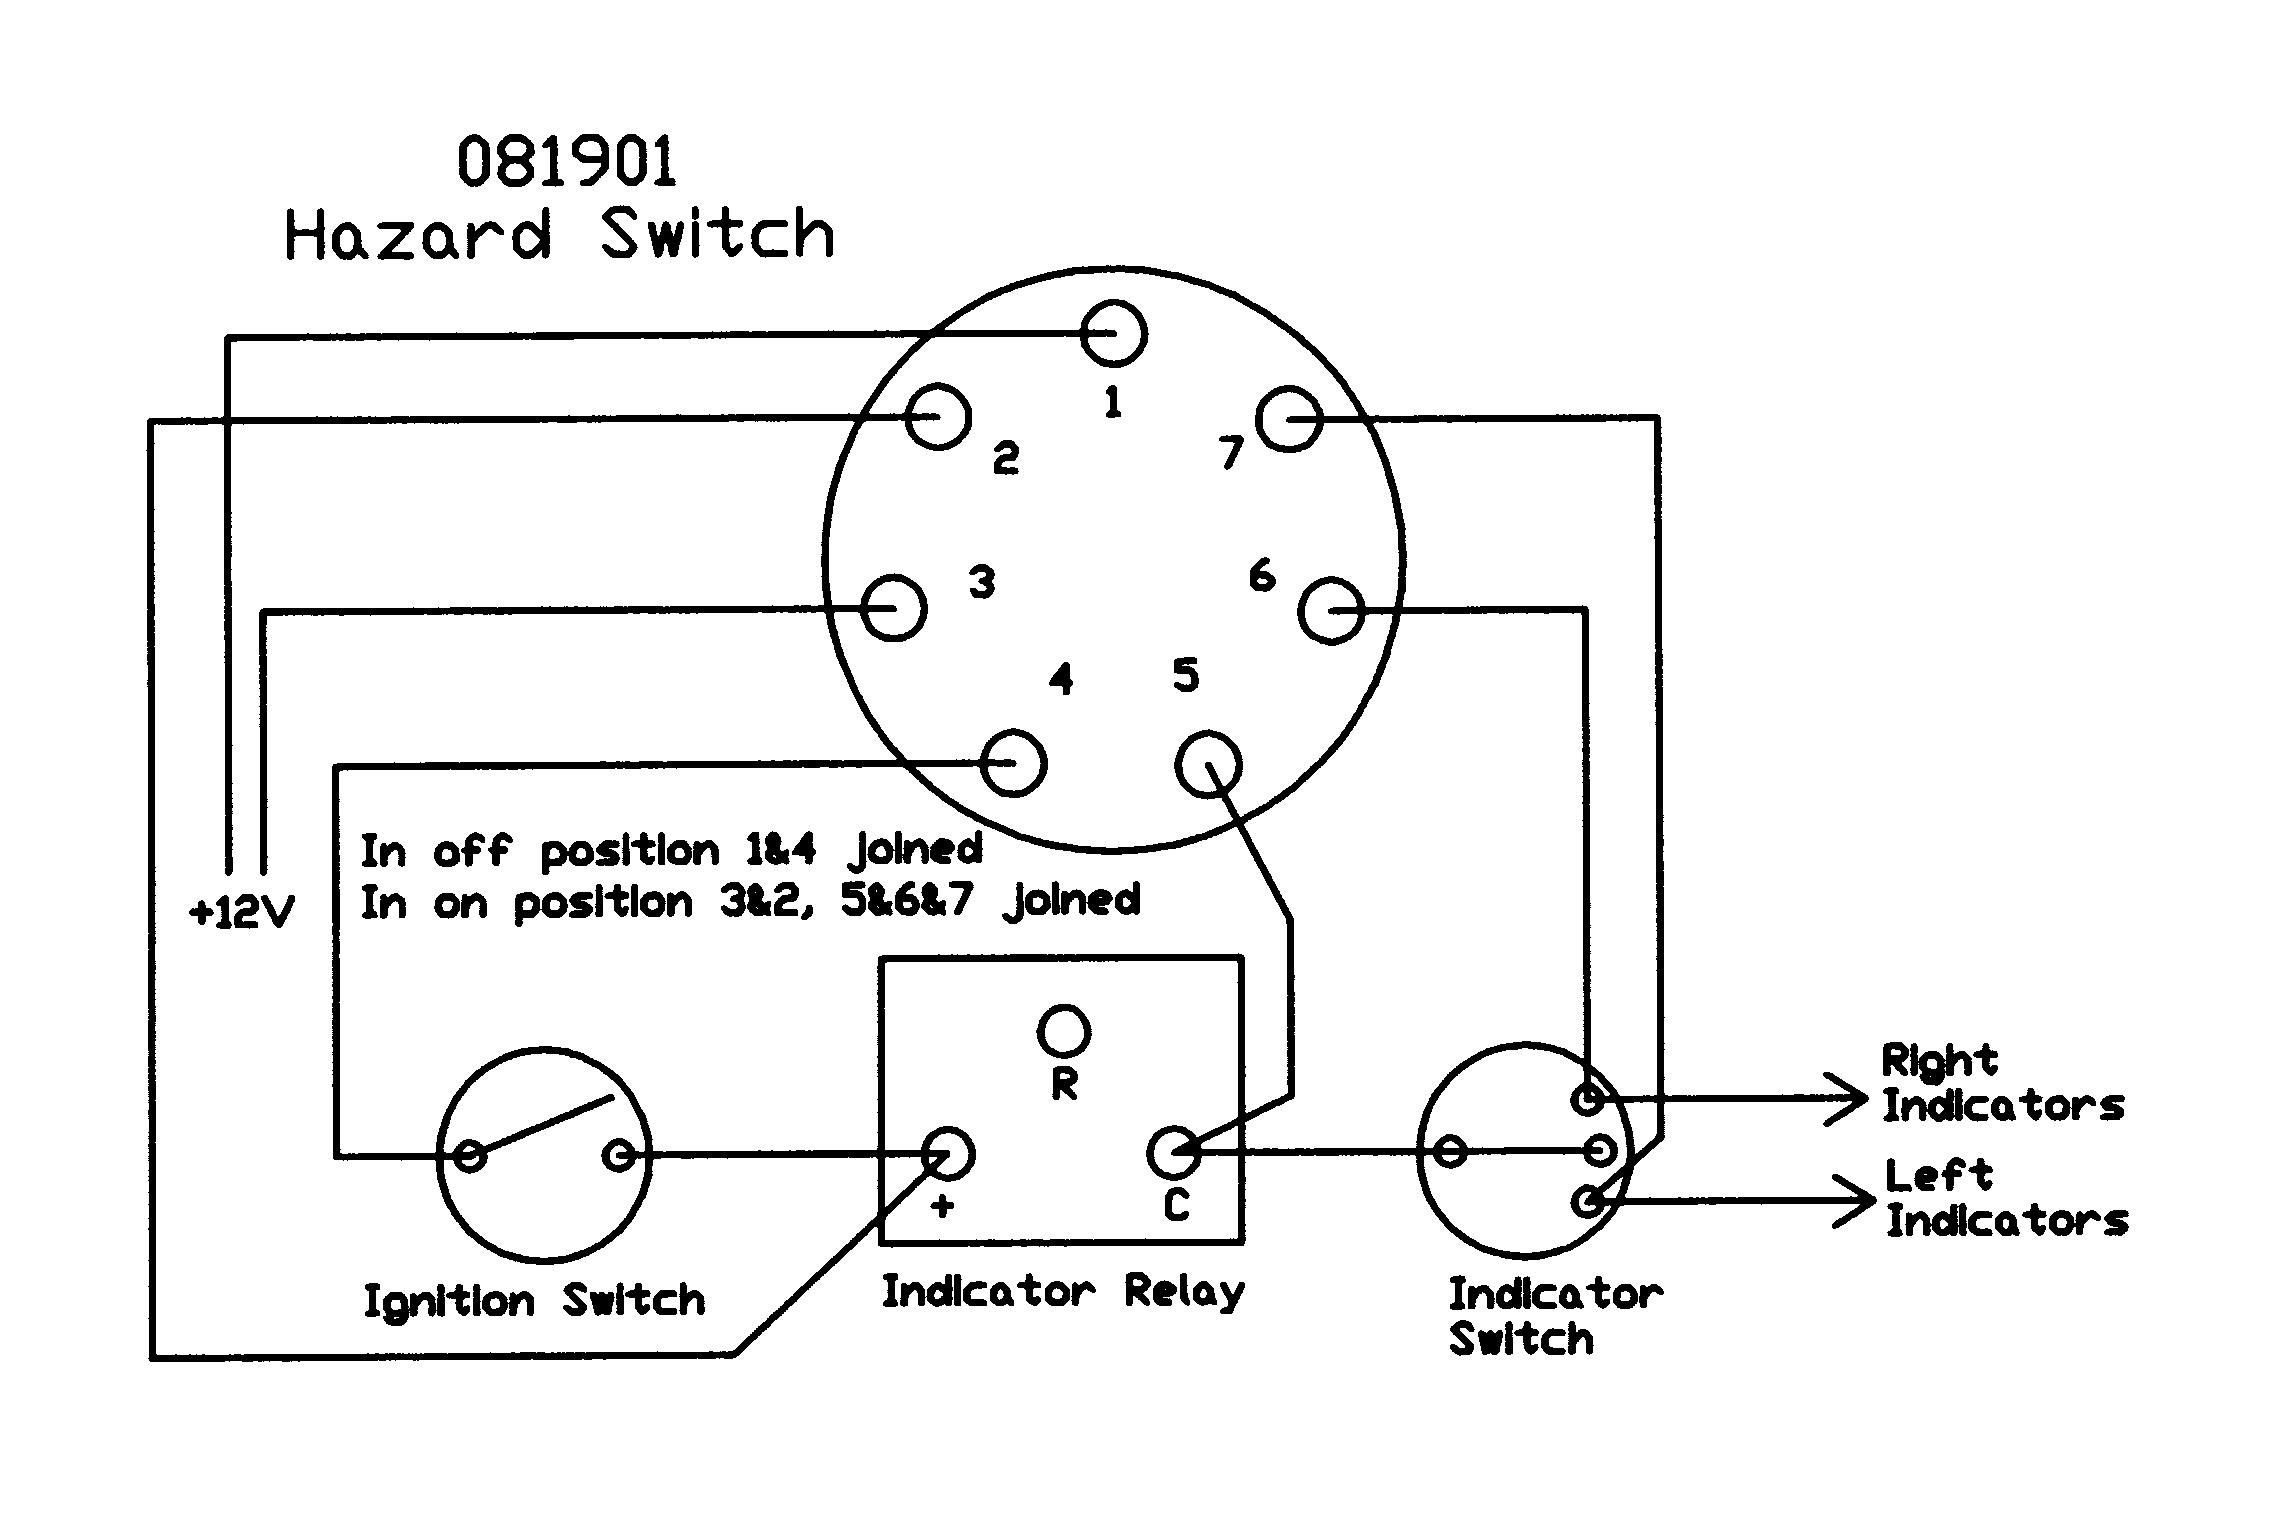 hazard switch wiring general wiring diagram information u2022 rh velvetfive co uk  basic hazard light wiring diagram